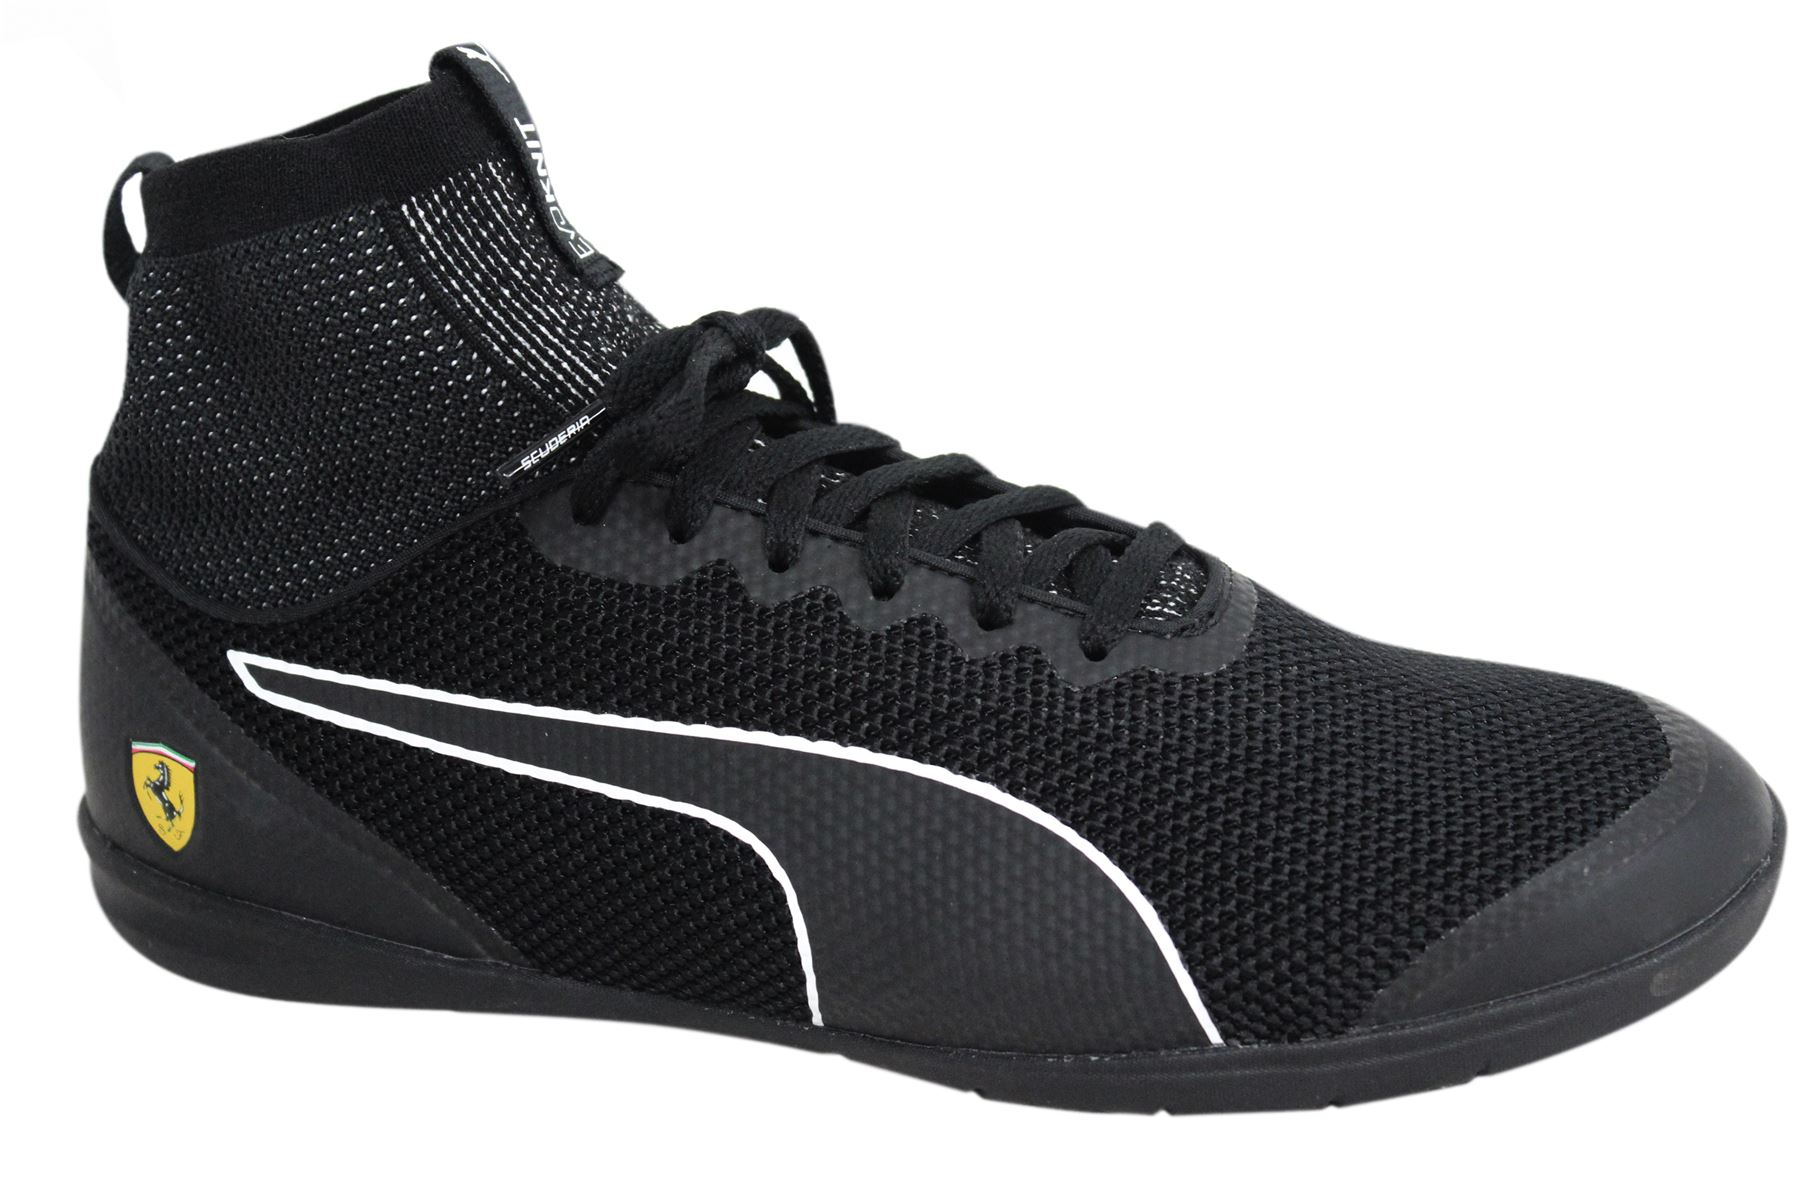 reputable site 6f780 01584 Details about Puma SF Ferrari Changer Ignite evoKNIT Lace Up Black Mens  Trainers 305919 02 M12